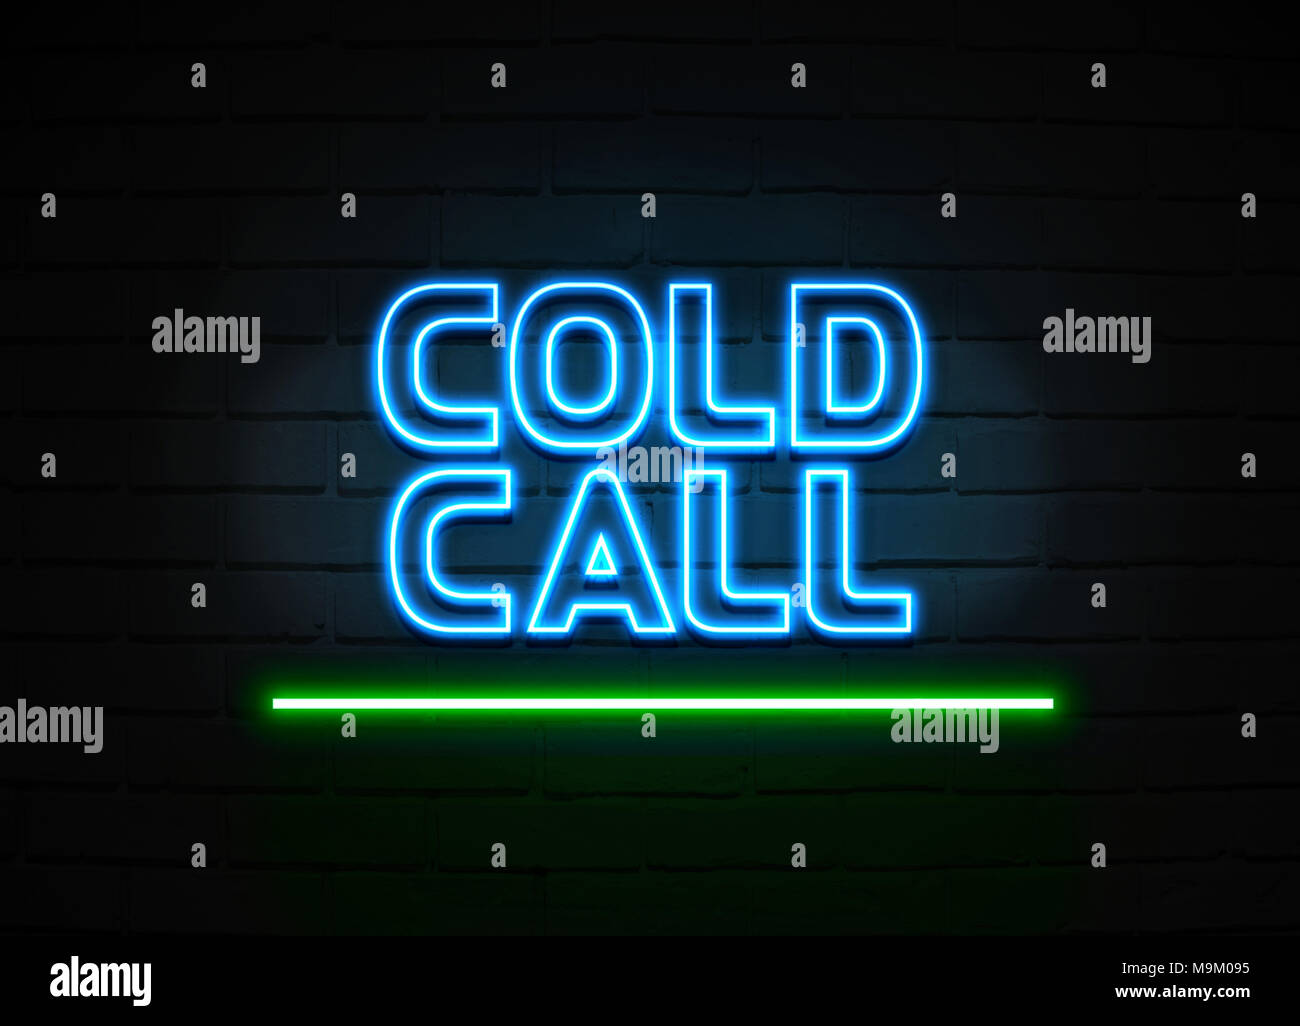 how to stop cold calls on mobile phone